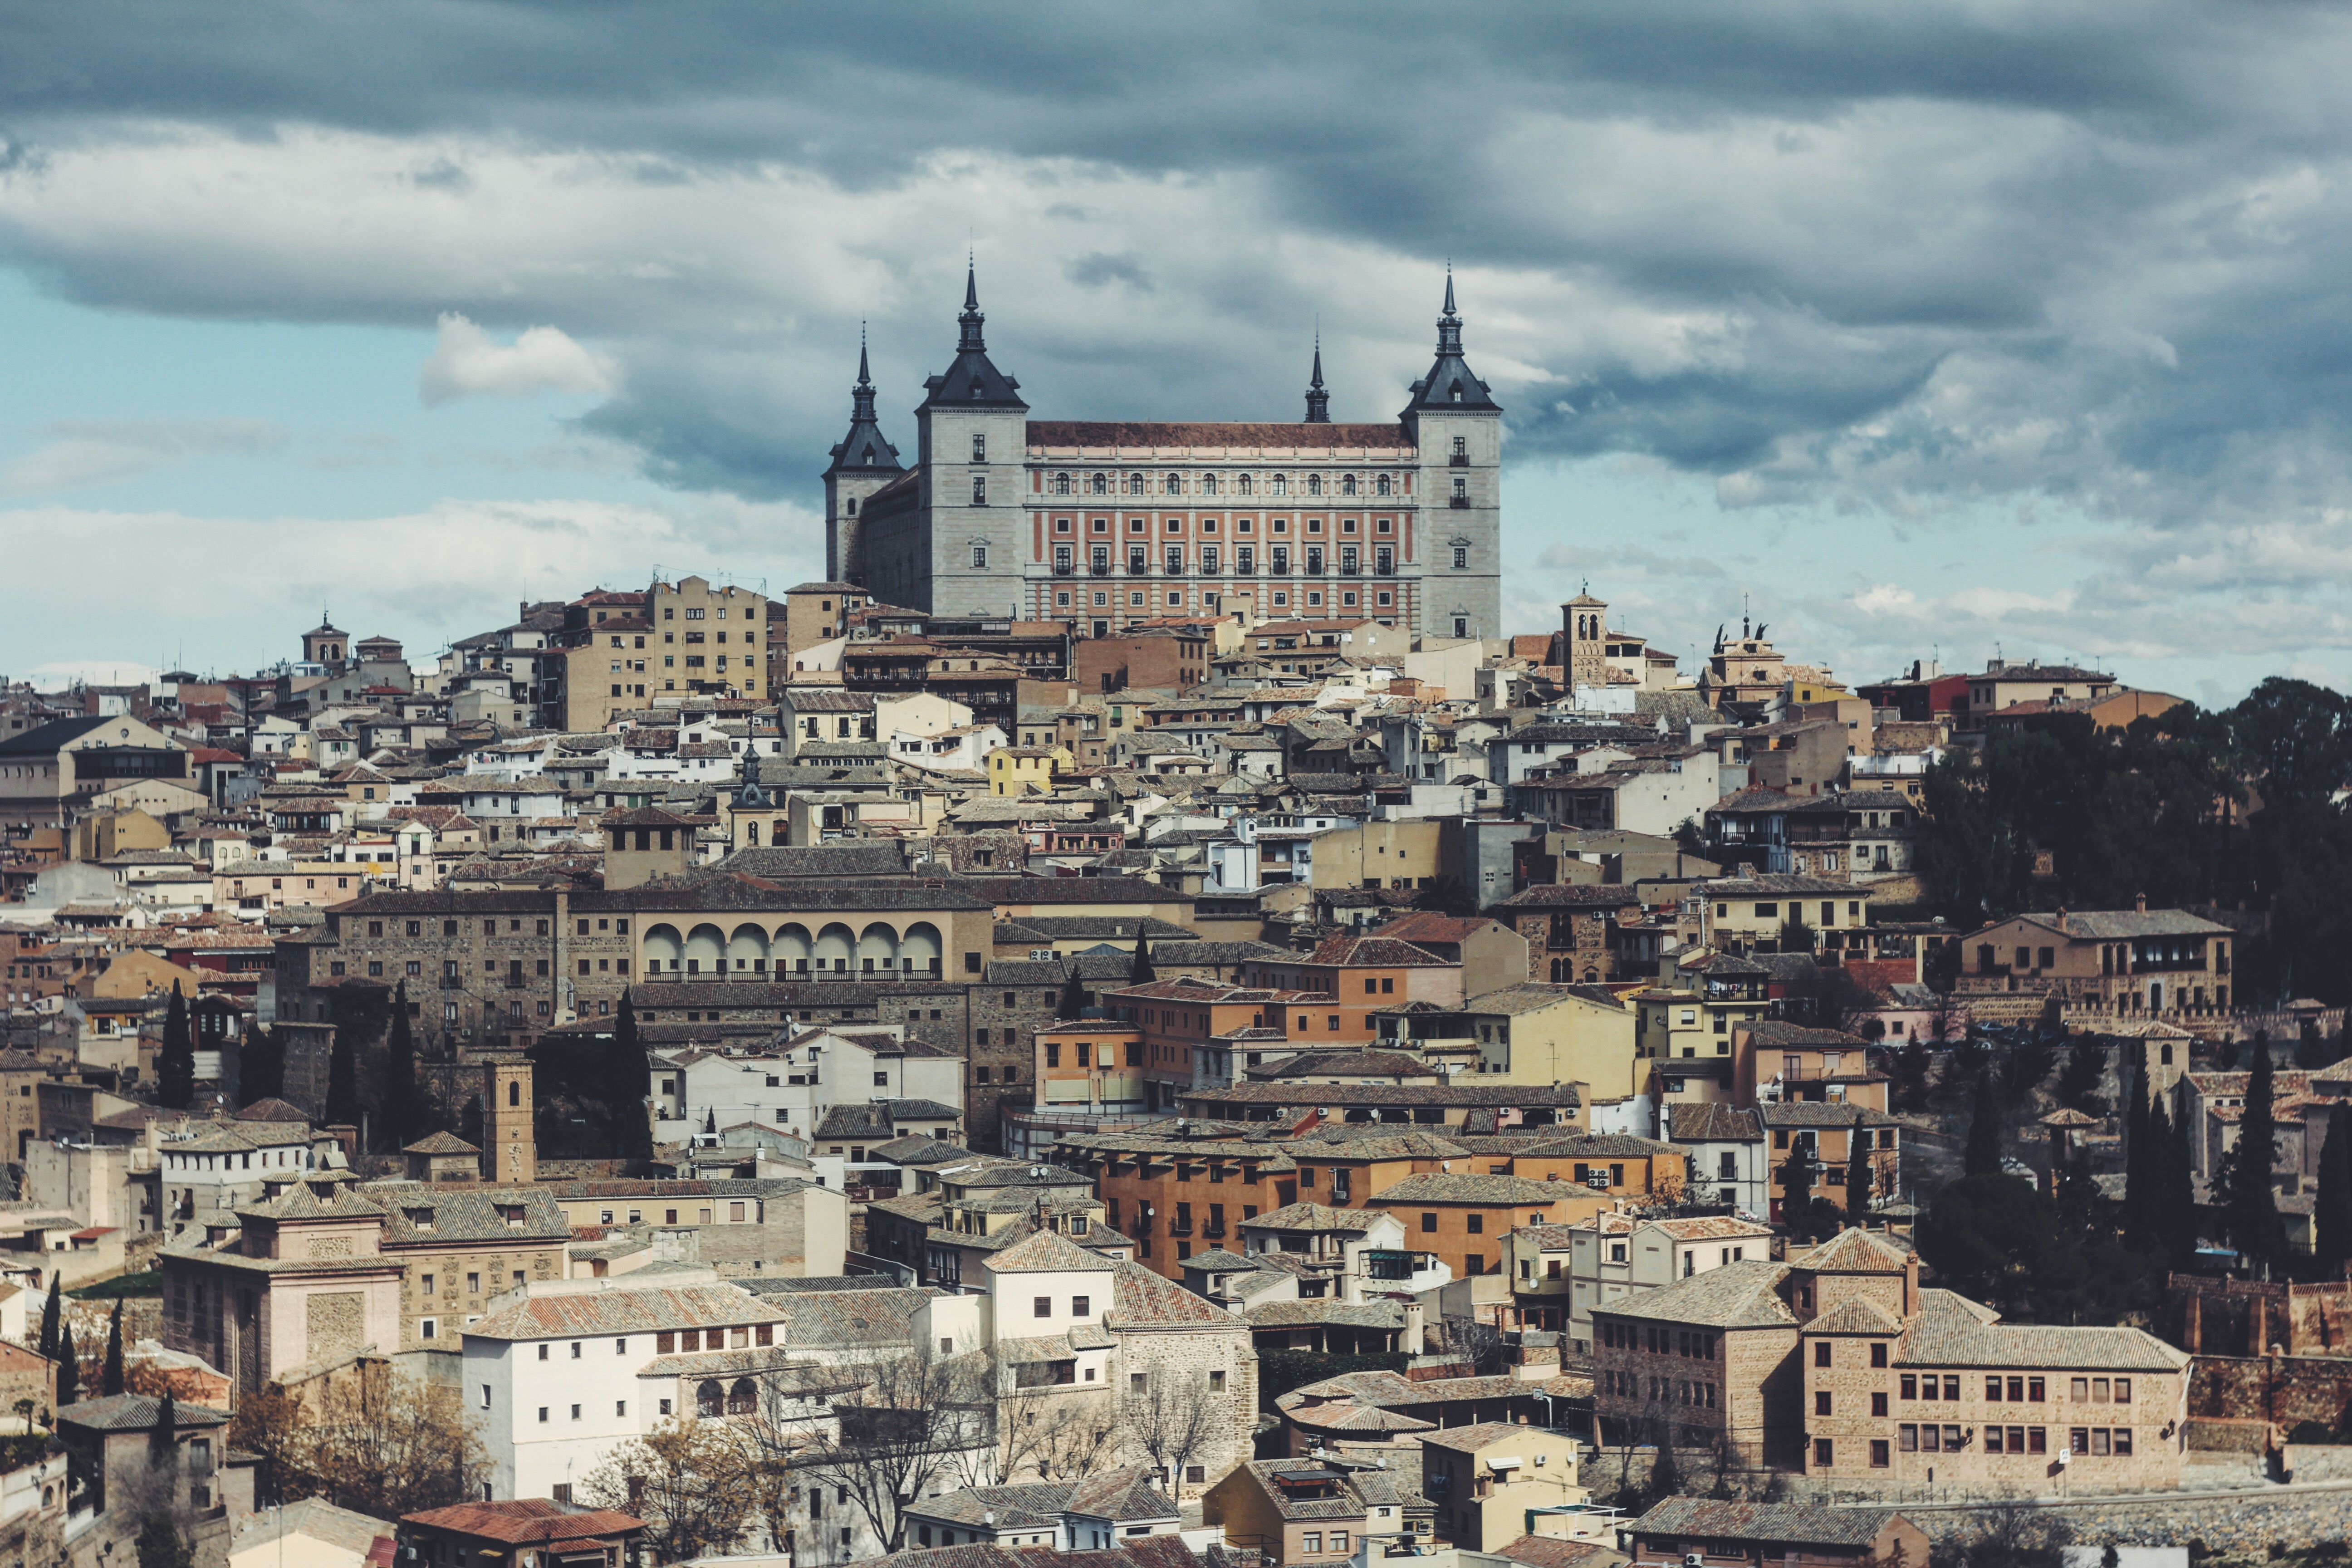 view of the castle in Toledo, Spain